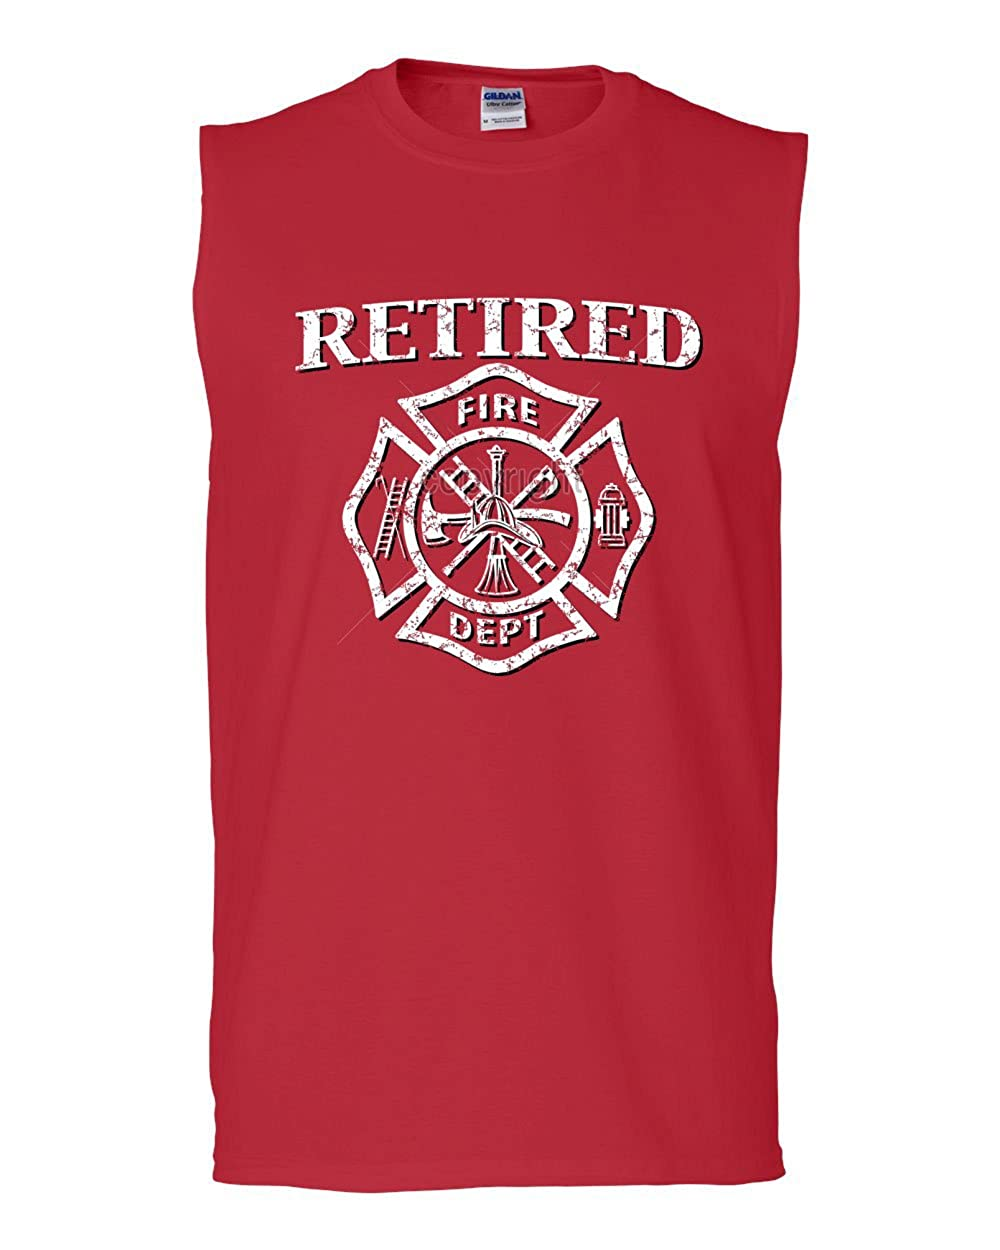 Tee Hunt Retired Firefighter Muscle Shirt Fire Dept Volunteer Retirement 100525-MS